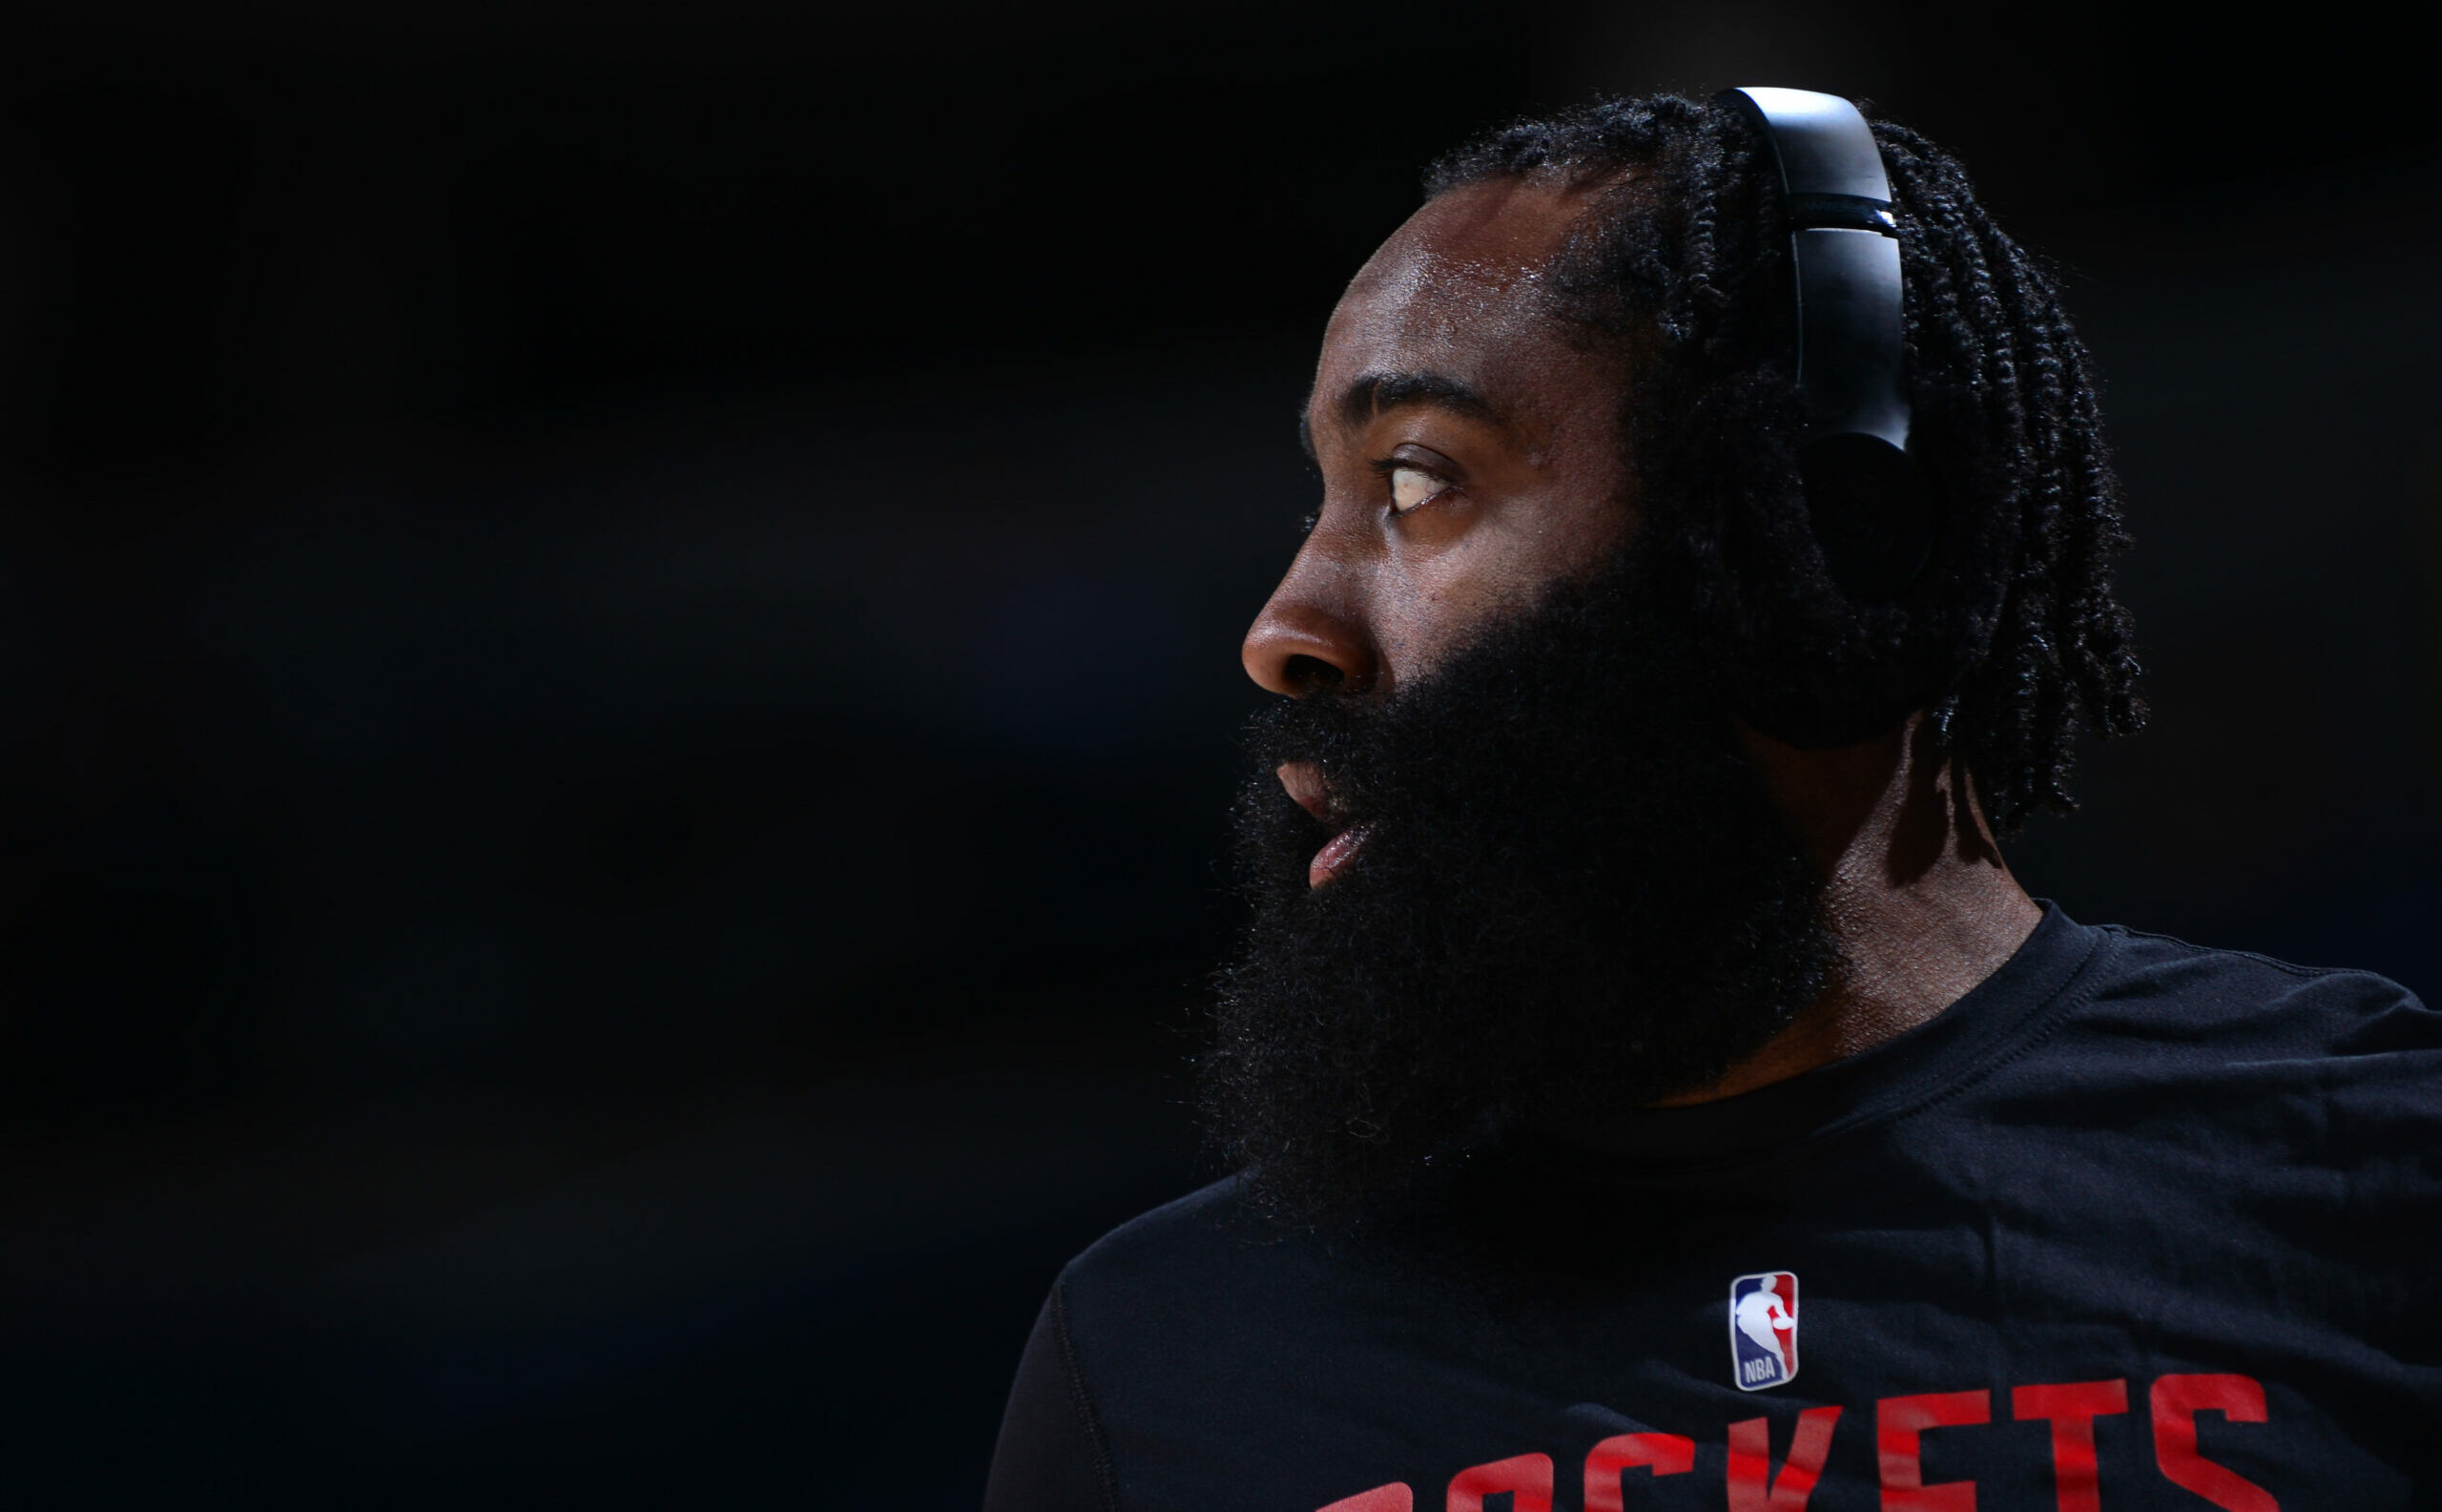 Nets acquire James Harden in blockbuster trade